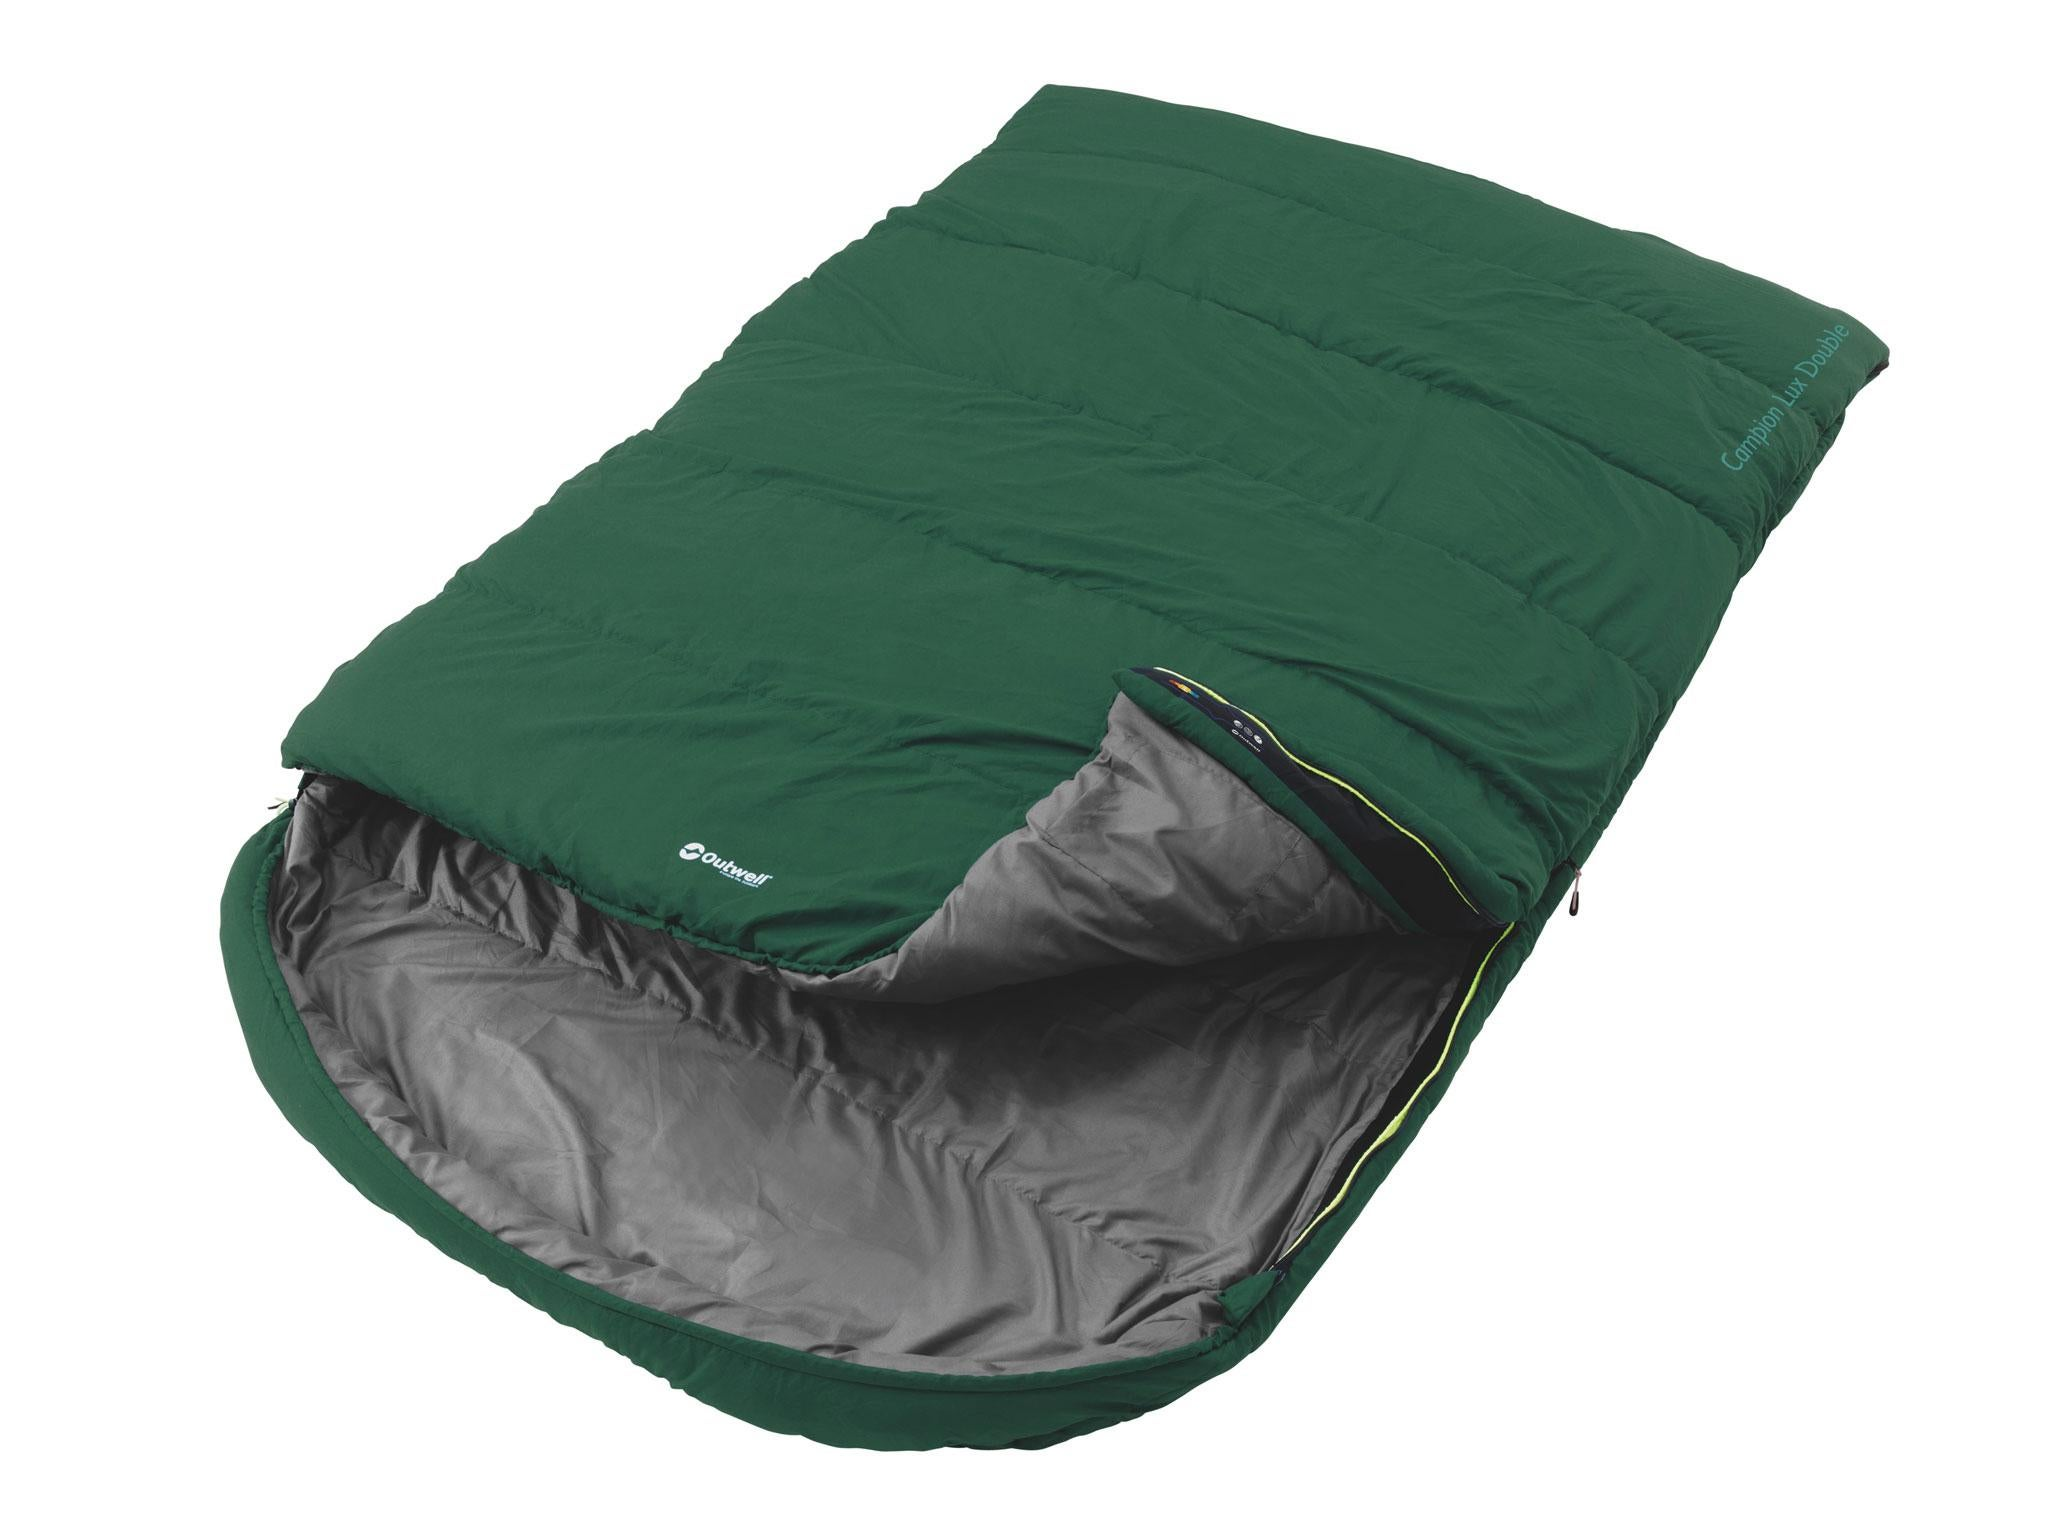 10 best sleeping bags | The Independent